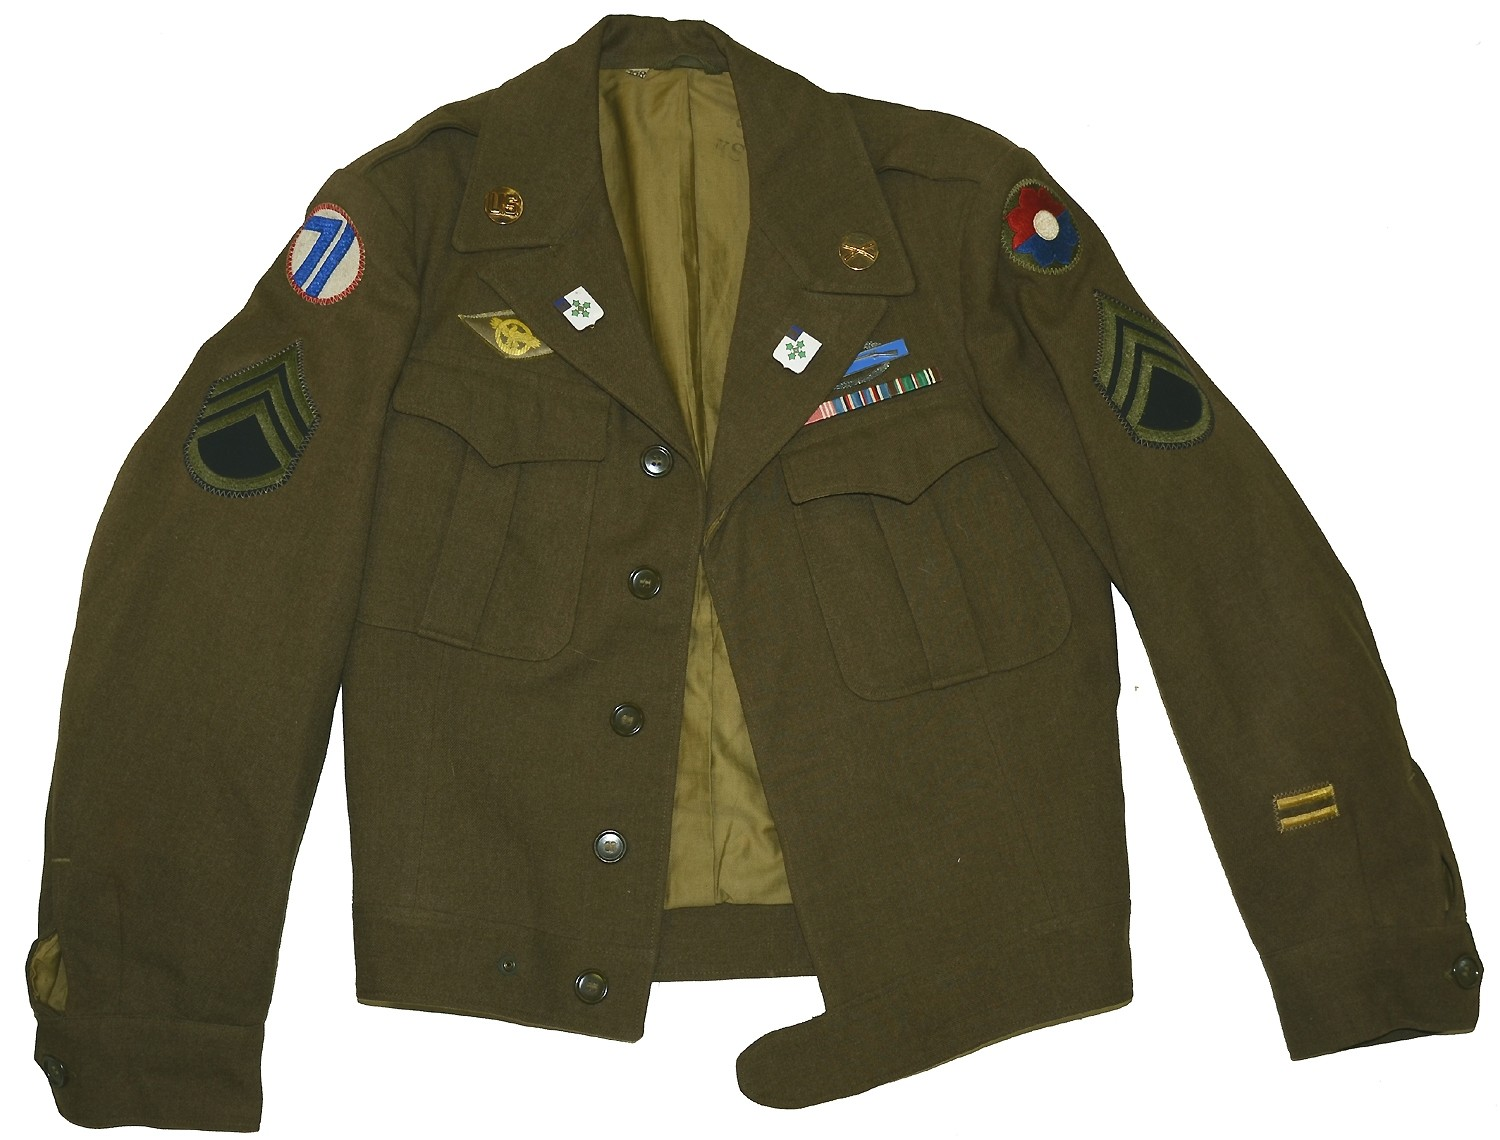 WORLD WAR TWO US IKE JACKET IDENTIFIED TO 9TH INFANTRY DIVISION SOLDIER WITH GERMAN MADE DISTINCTIVE UNIT INSIGNIA